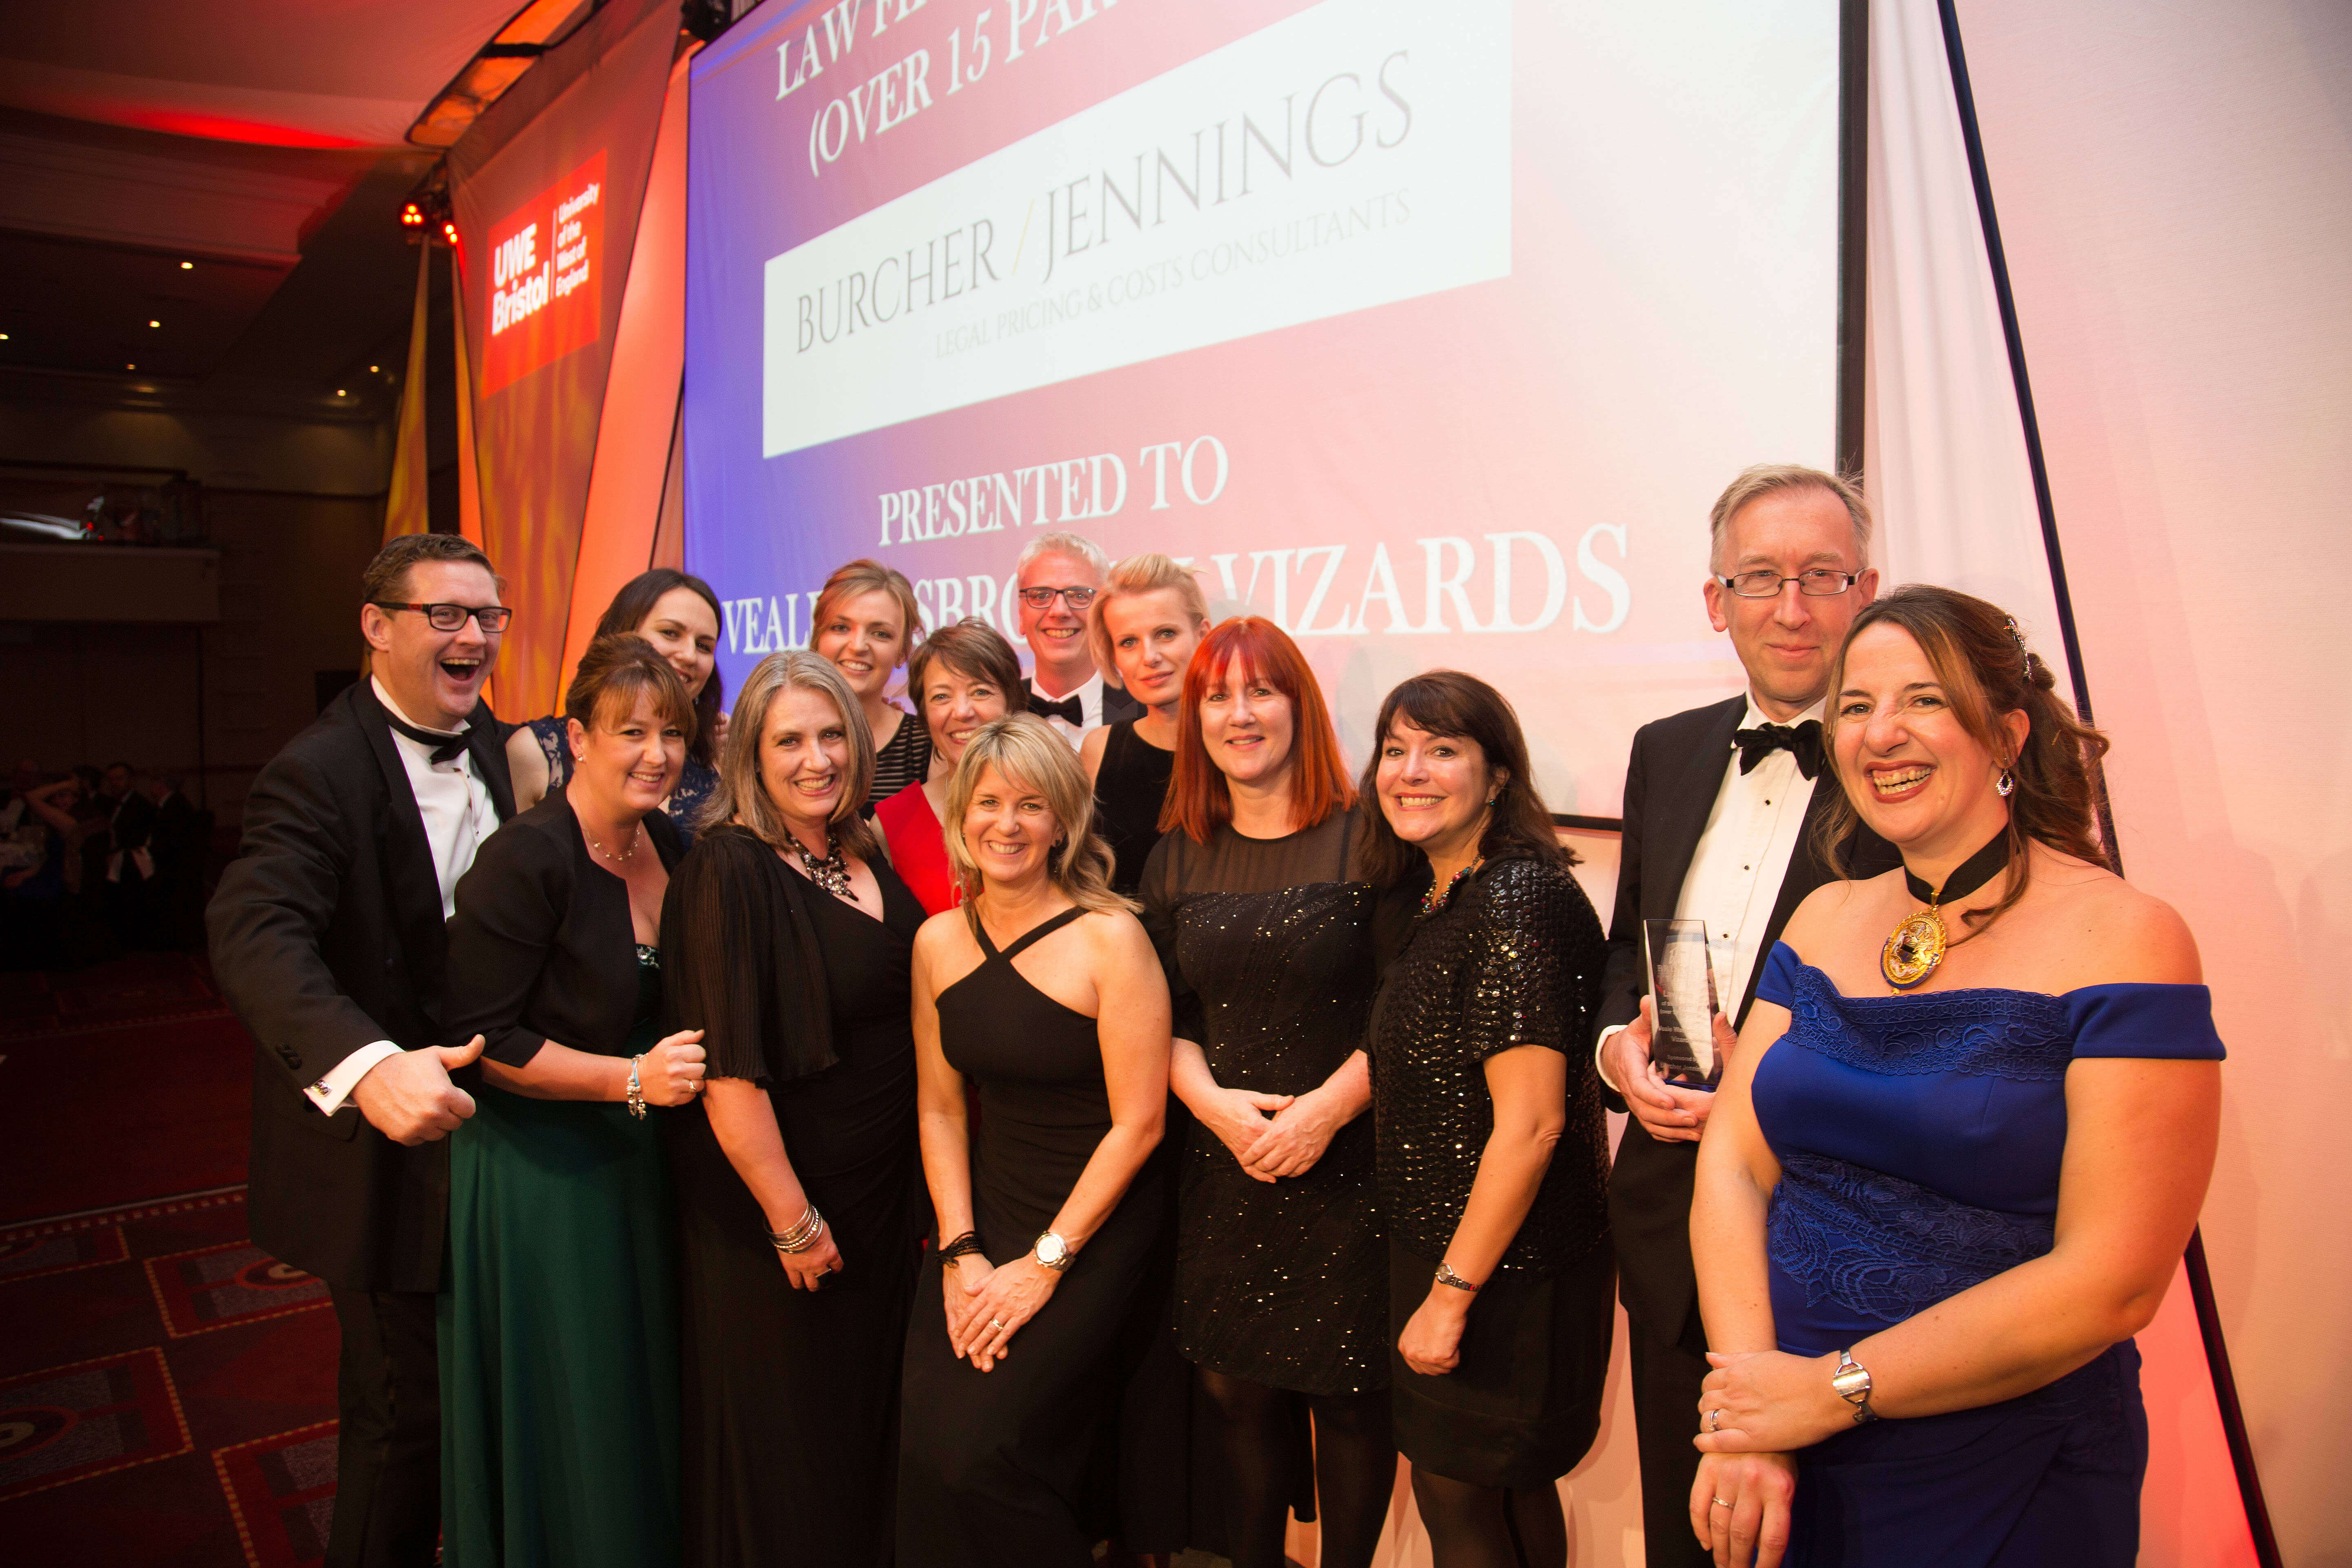 Bristol Law Society Annual Award winners say victory reflects their hard work and values